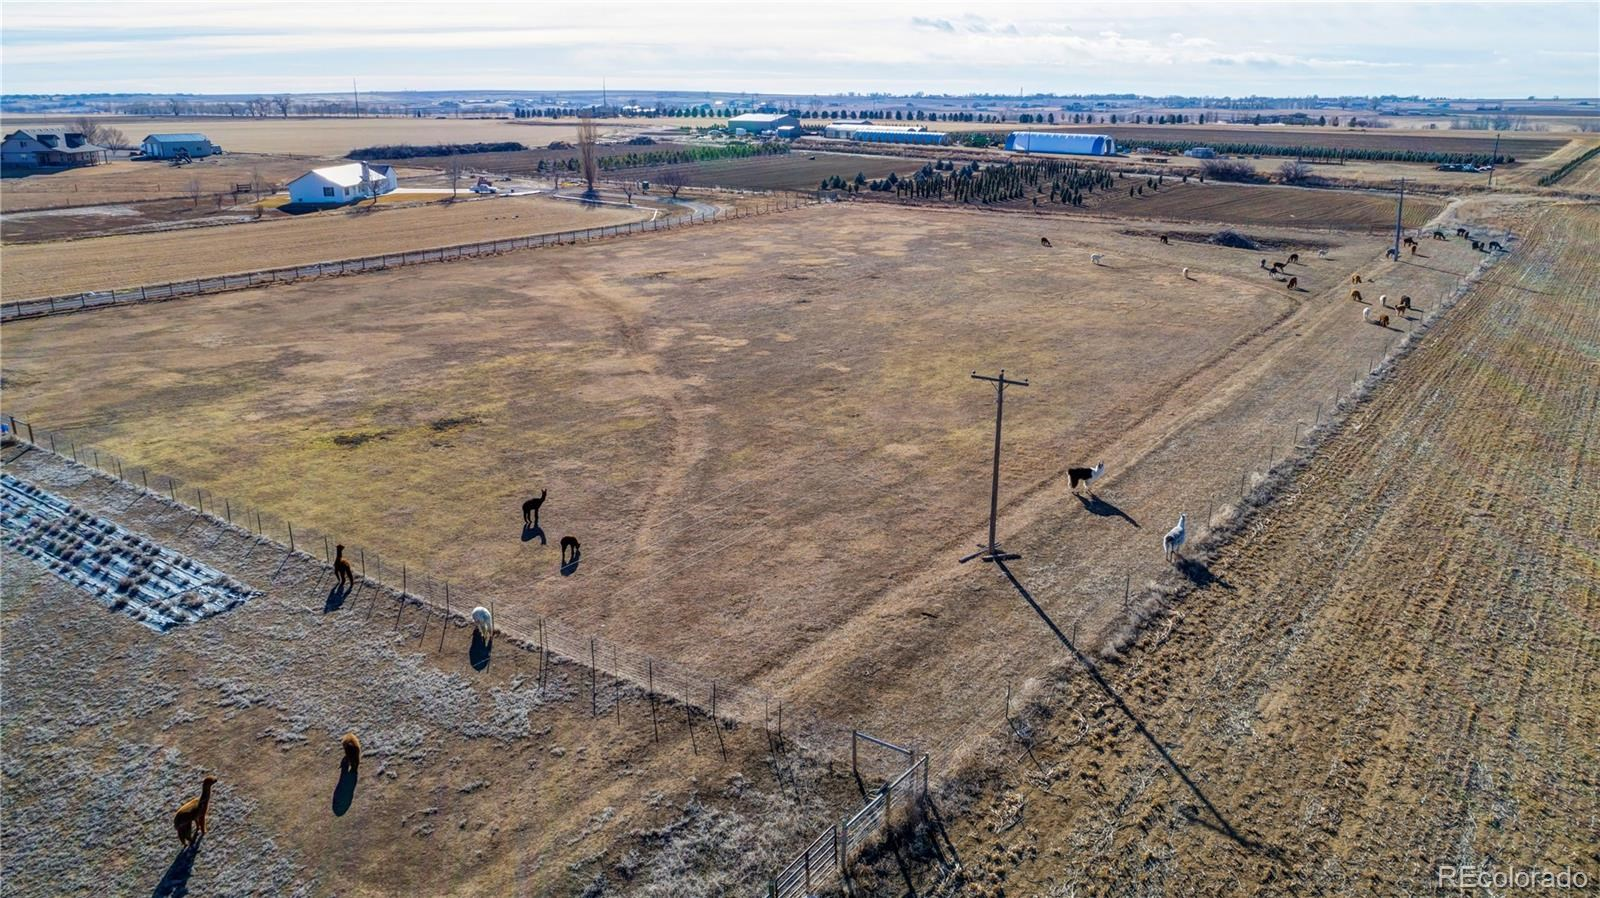 MLS# 3198319 - 6 - 548 E State Highway 56 A , Berthoud, CO 80513